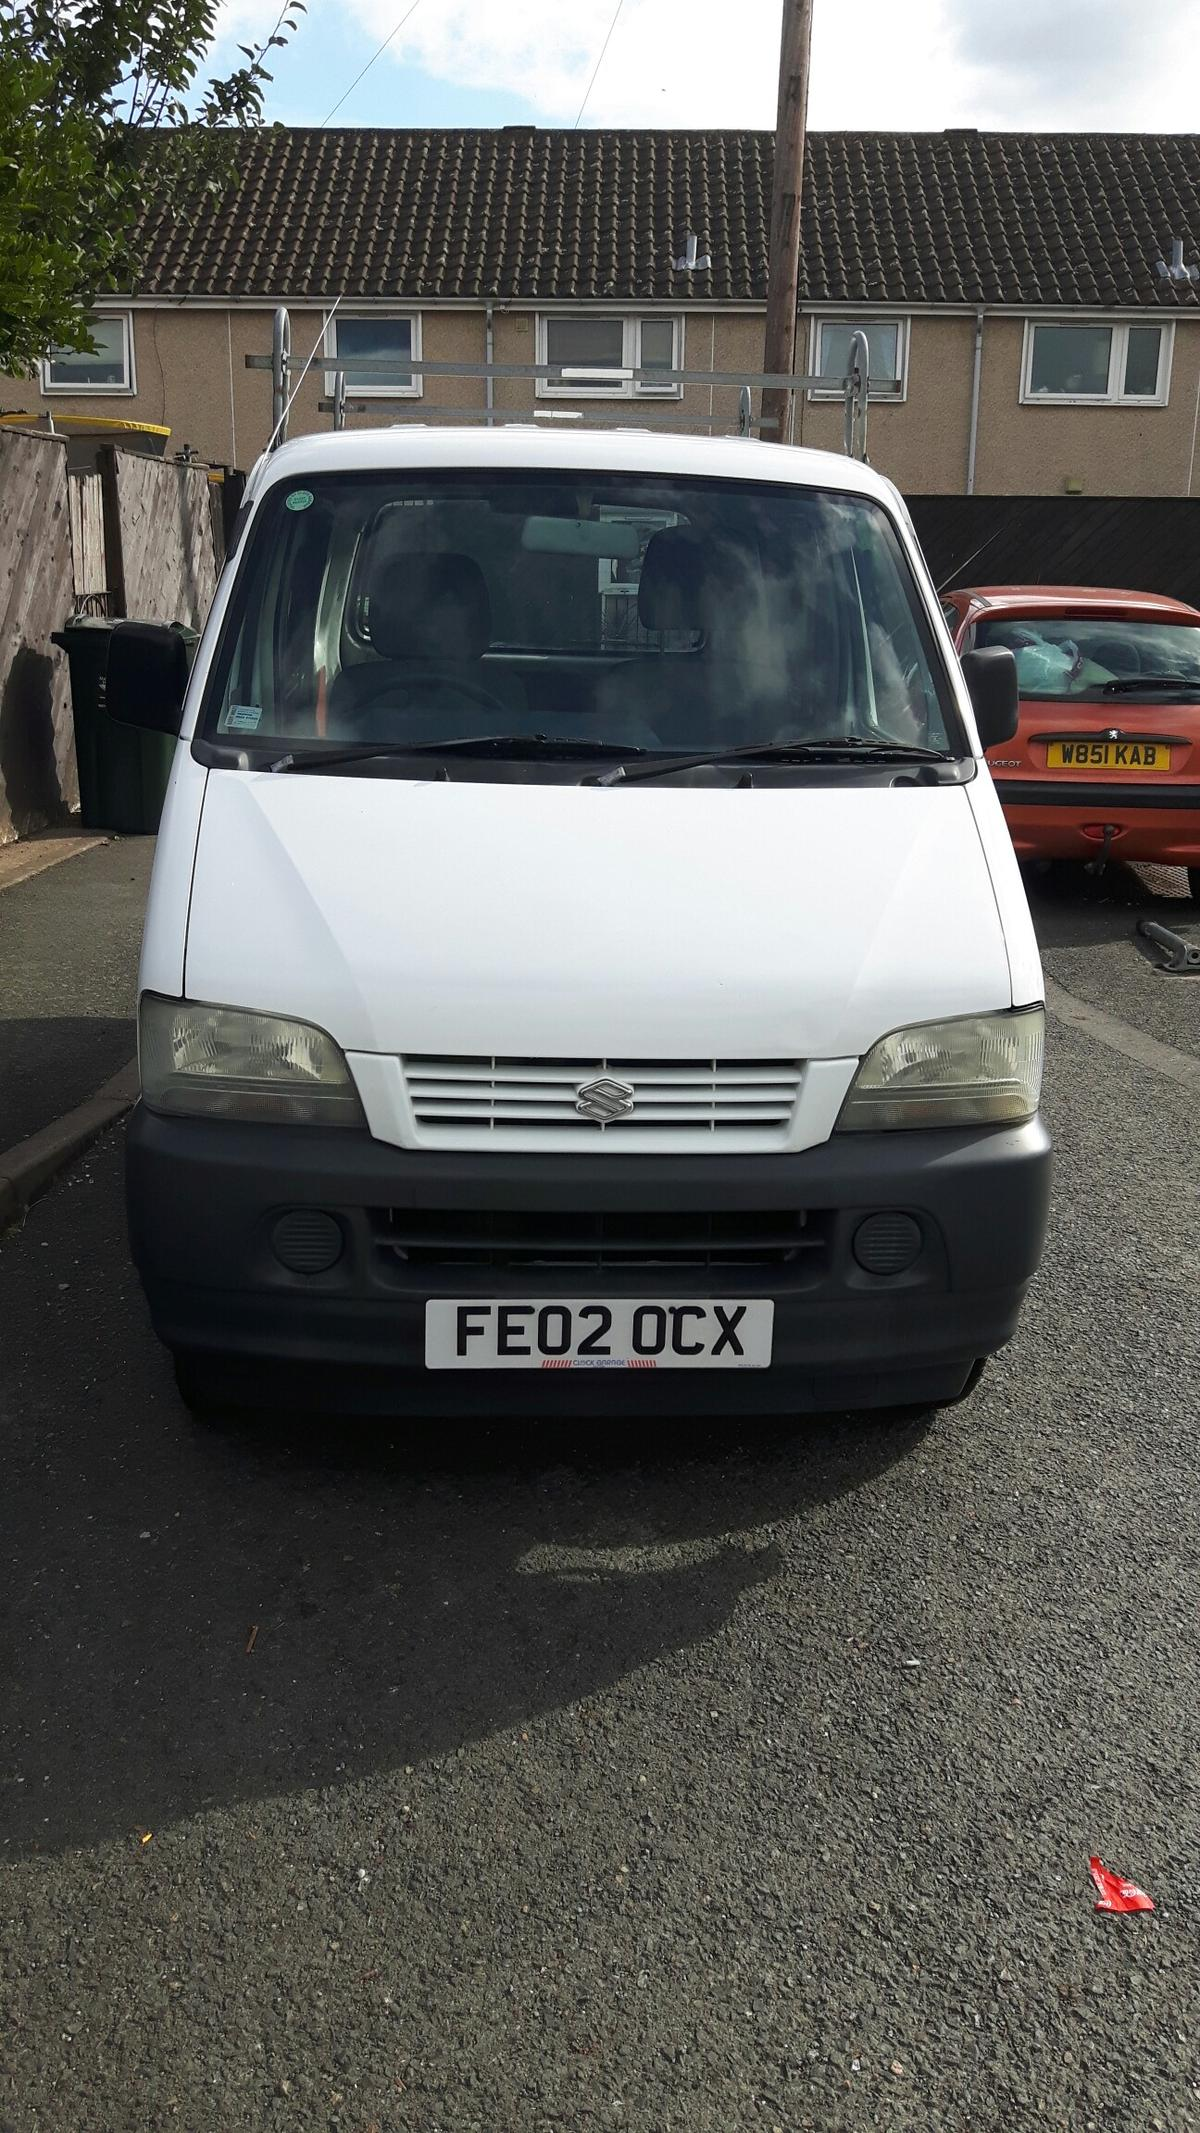 Suzuki carry van 1 3 in WR3 Heath for £995 00 for sale - Shpock